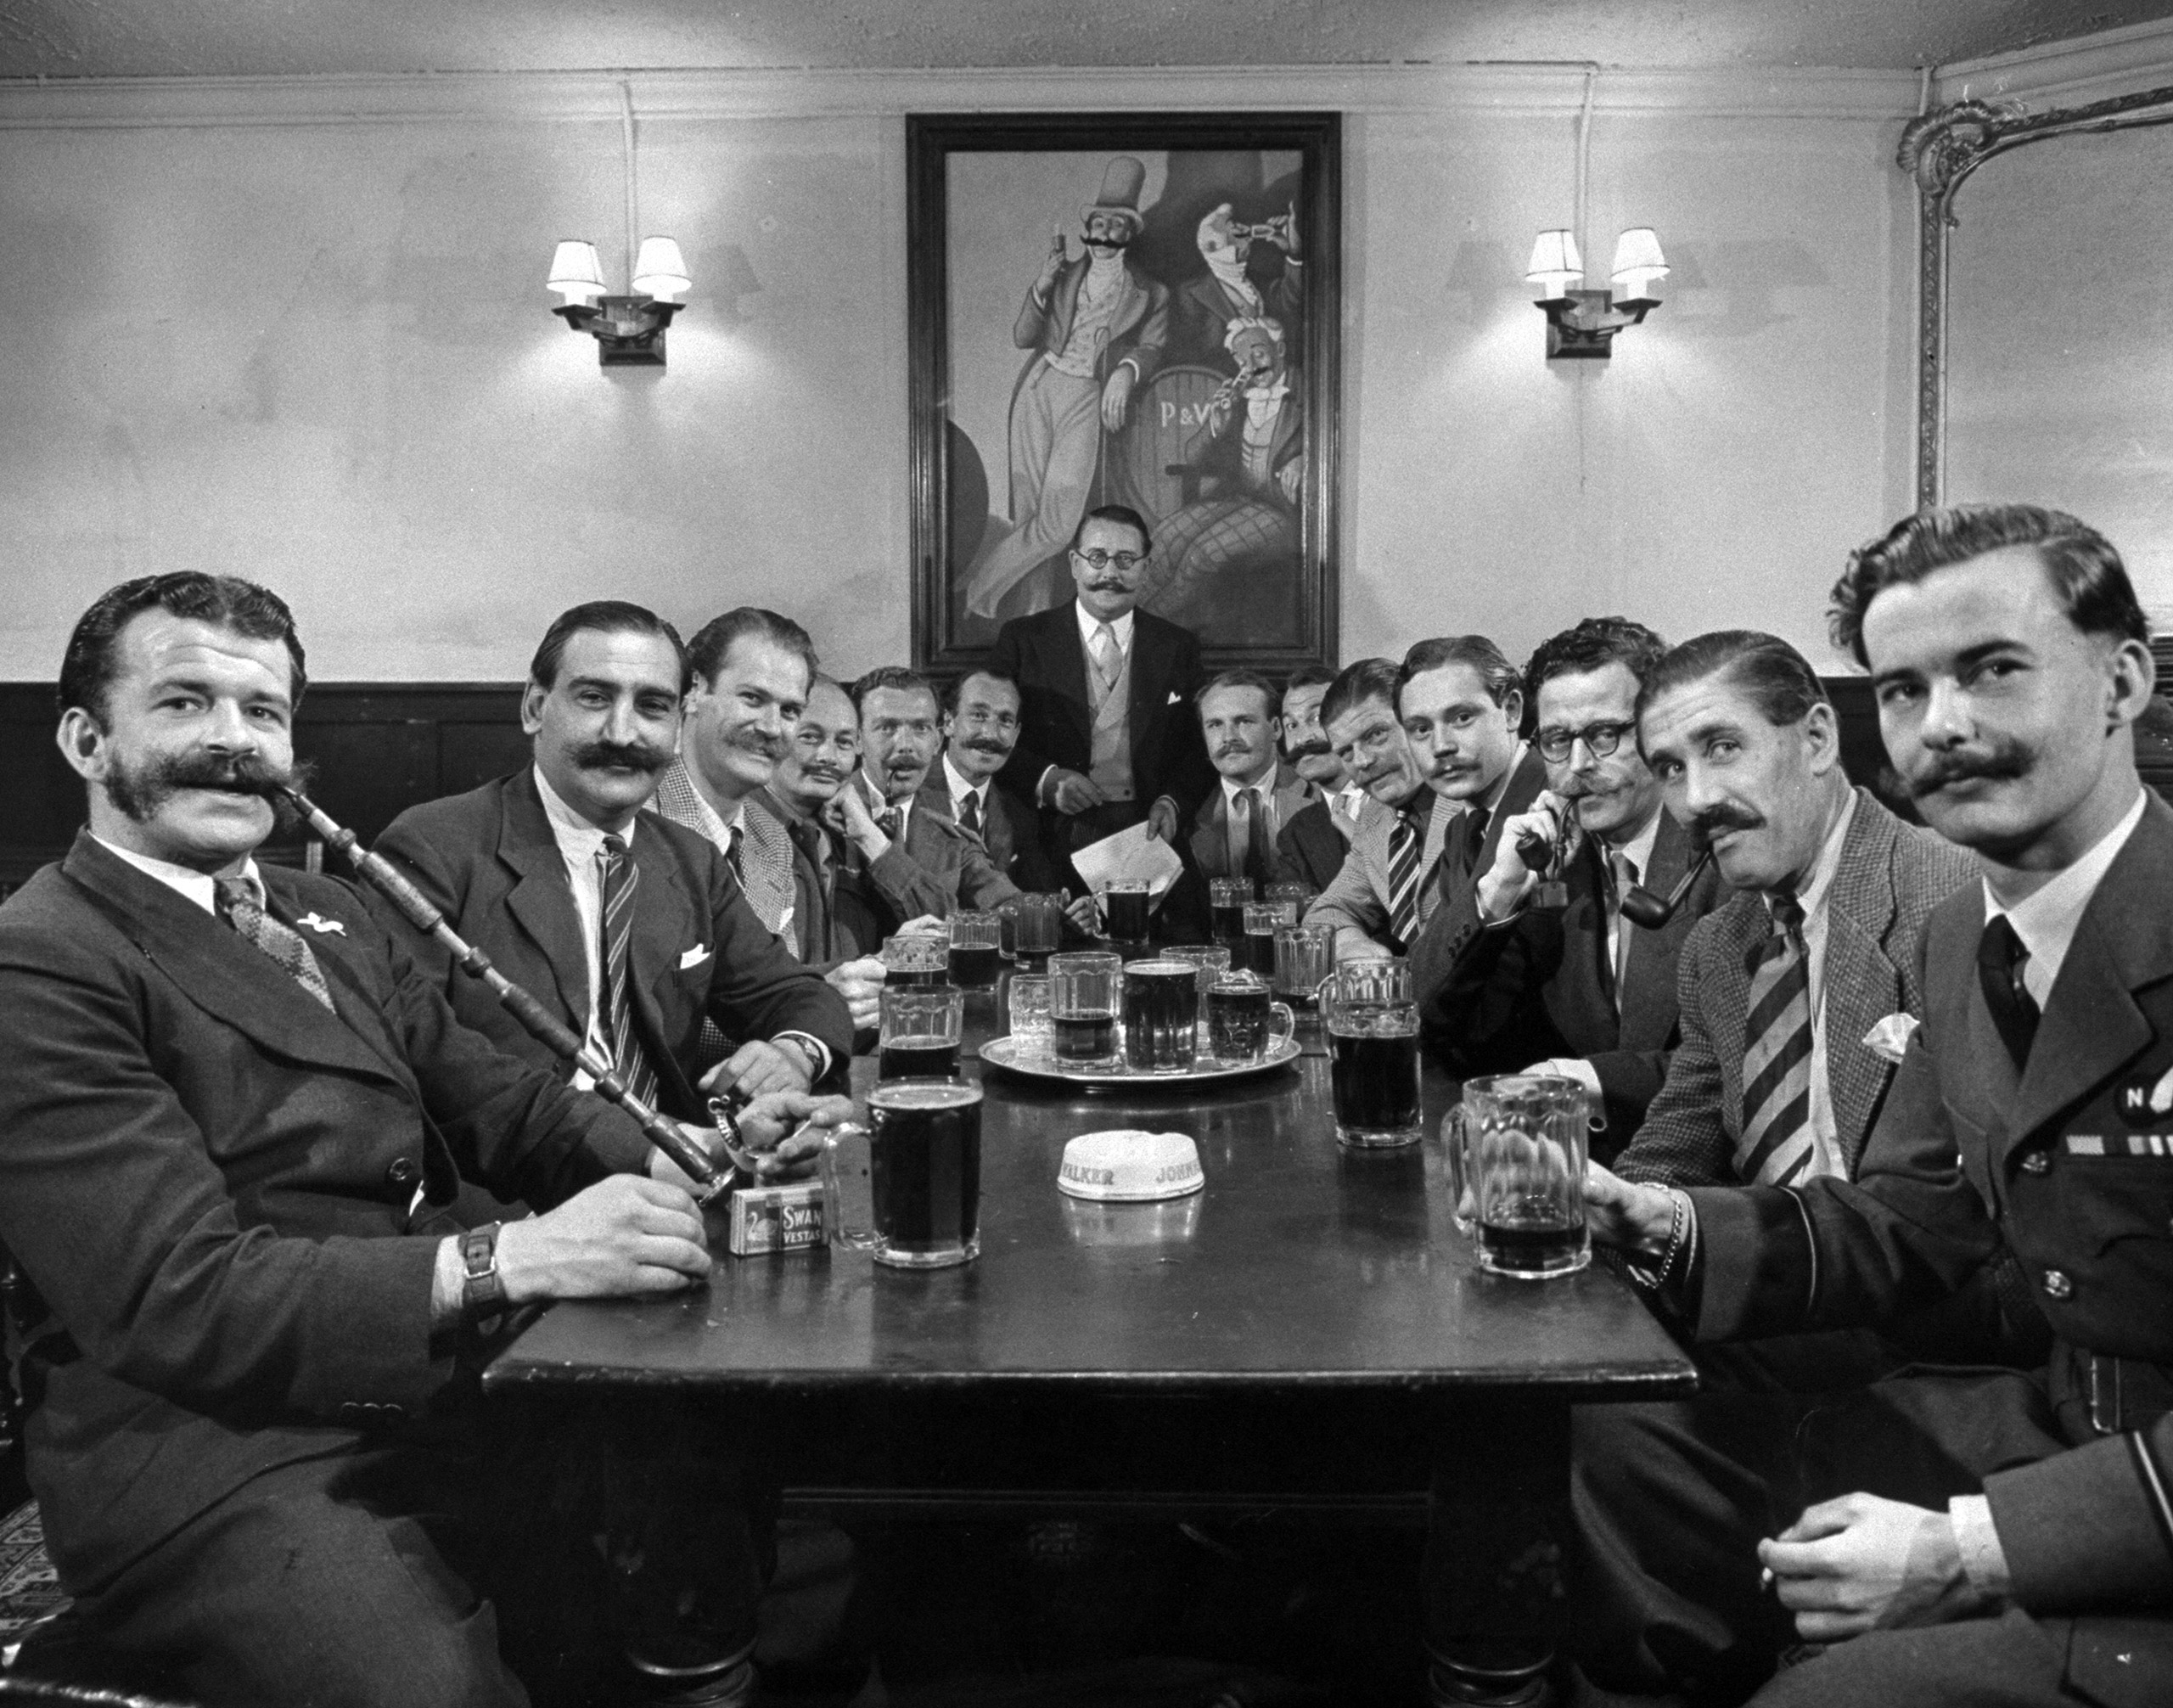 Caption from LIFE. At Temple Public House, club members hold formal beer session. The mustaches in the picture on their wall have been taped on.